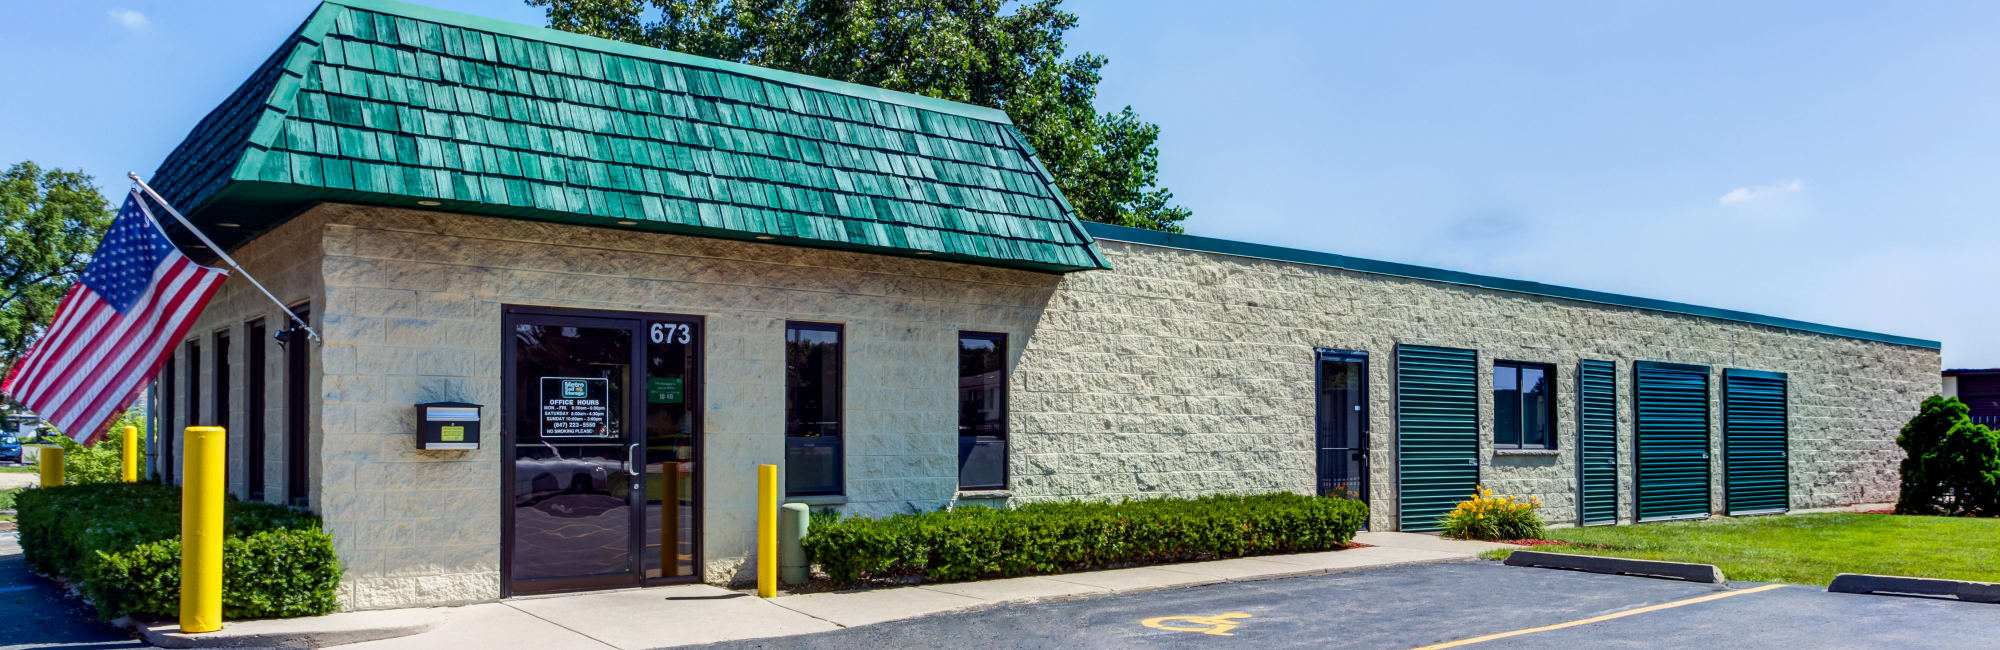 Metro Self Storage in Grayslake, IL